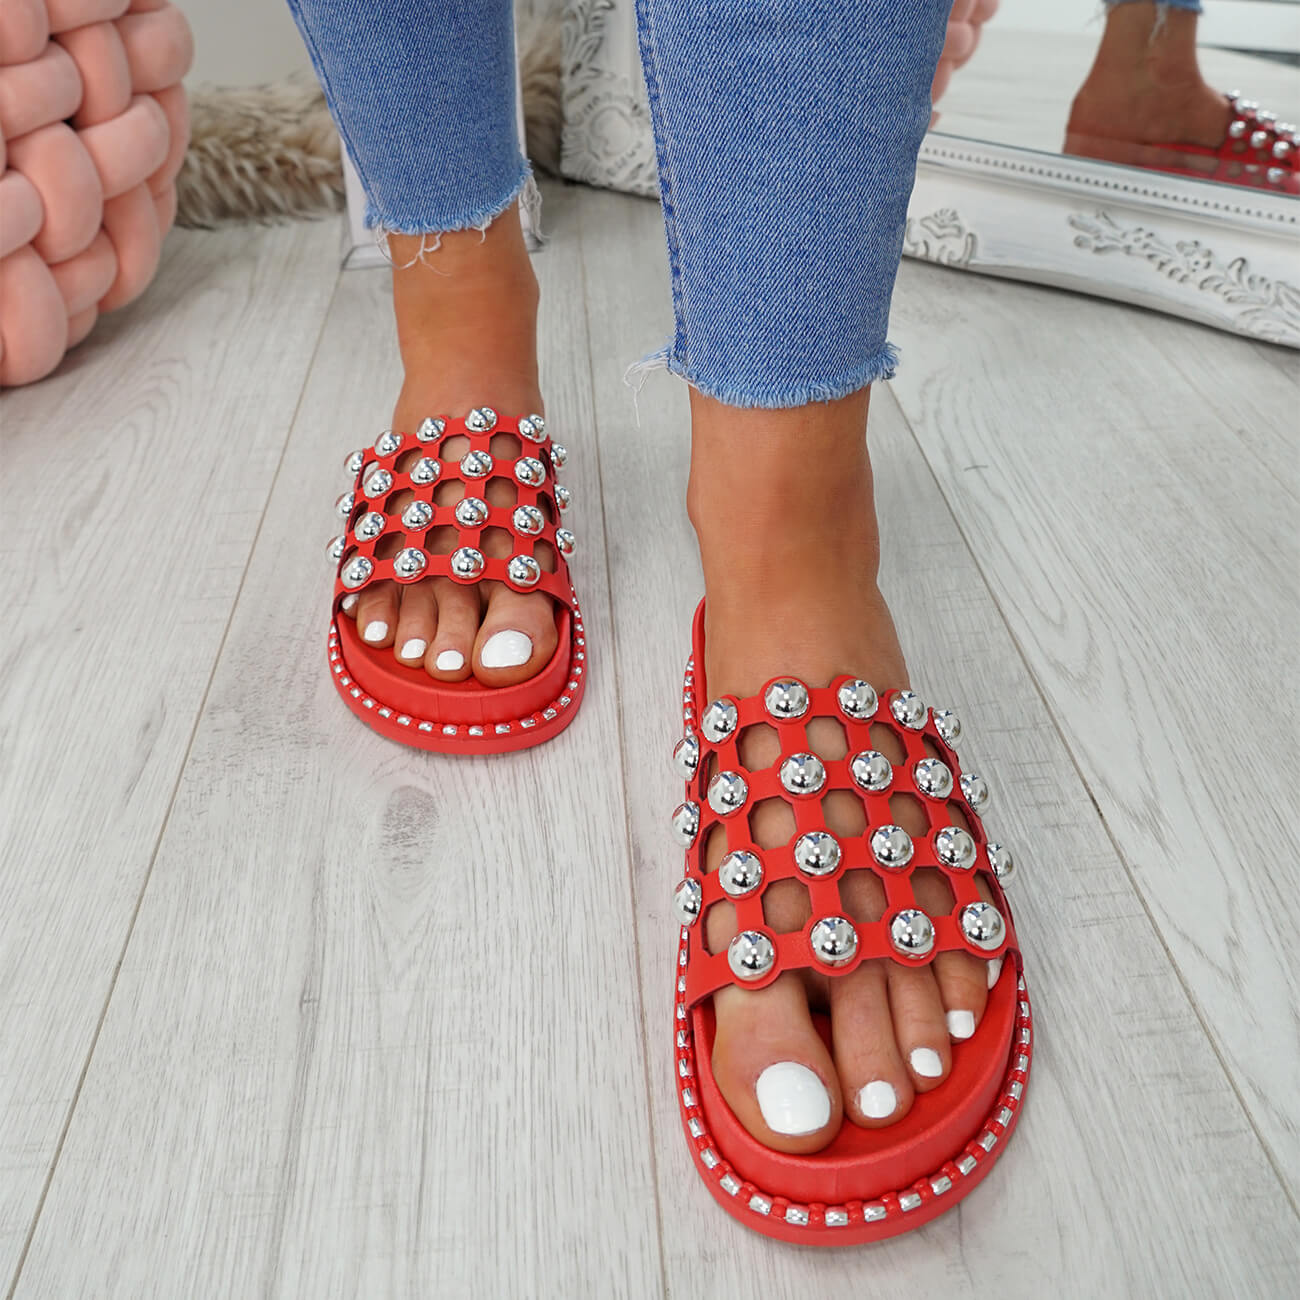 WOMENS-LADIES-PEARL-STUDDED-SLIP-ON-FLAT-SANDALS-HEELS-FLIP-FLOP-SHOES-SIZE thumbnail 17